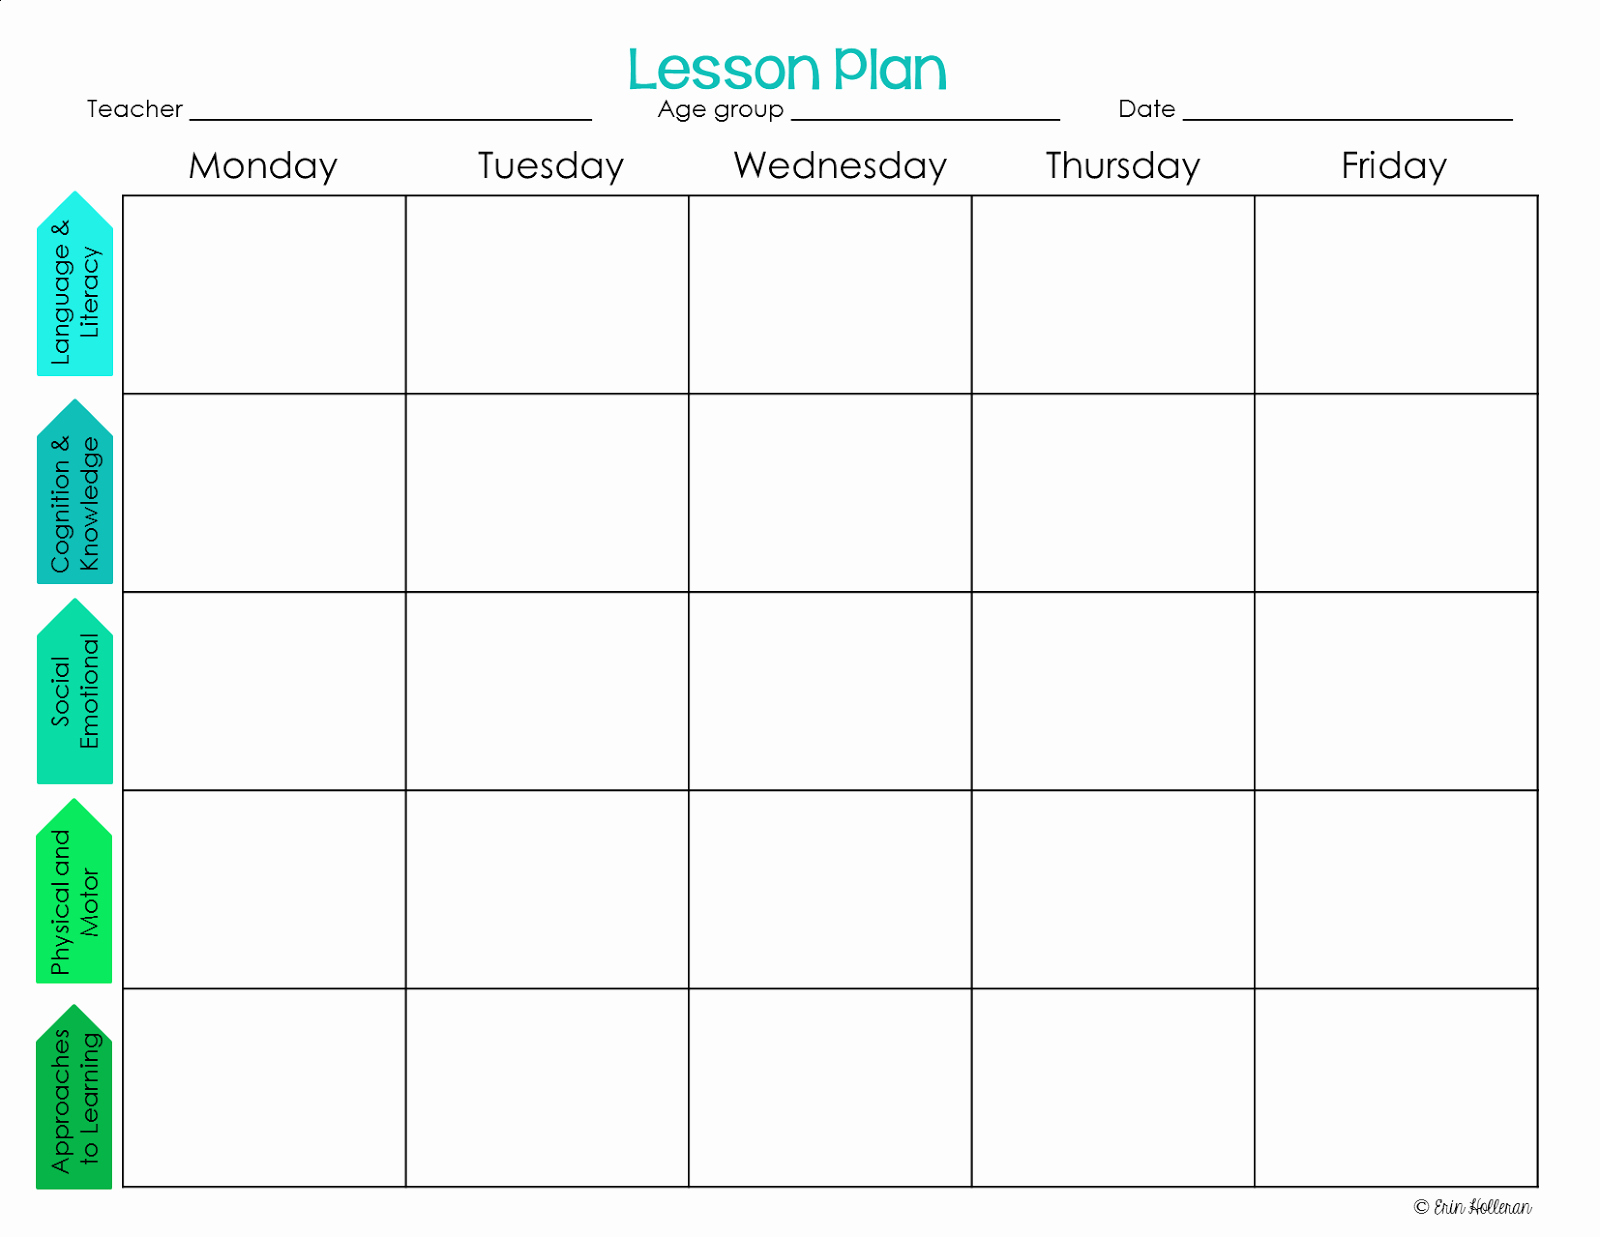 Lesson Plan Template for toddlers Lovely Preschool Ponderings Make Your Lesson Plans Work for You